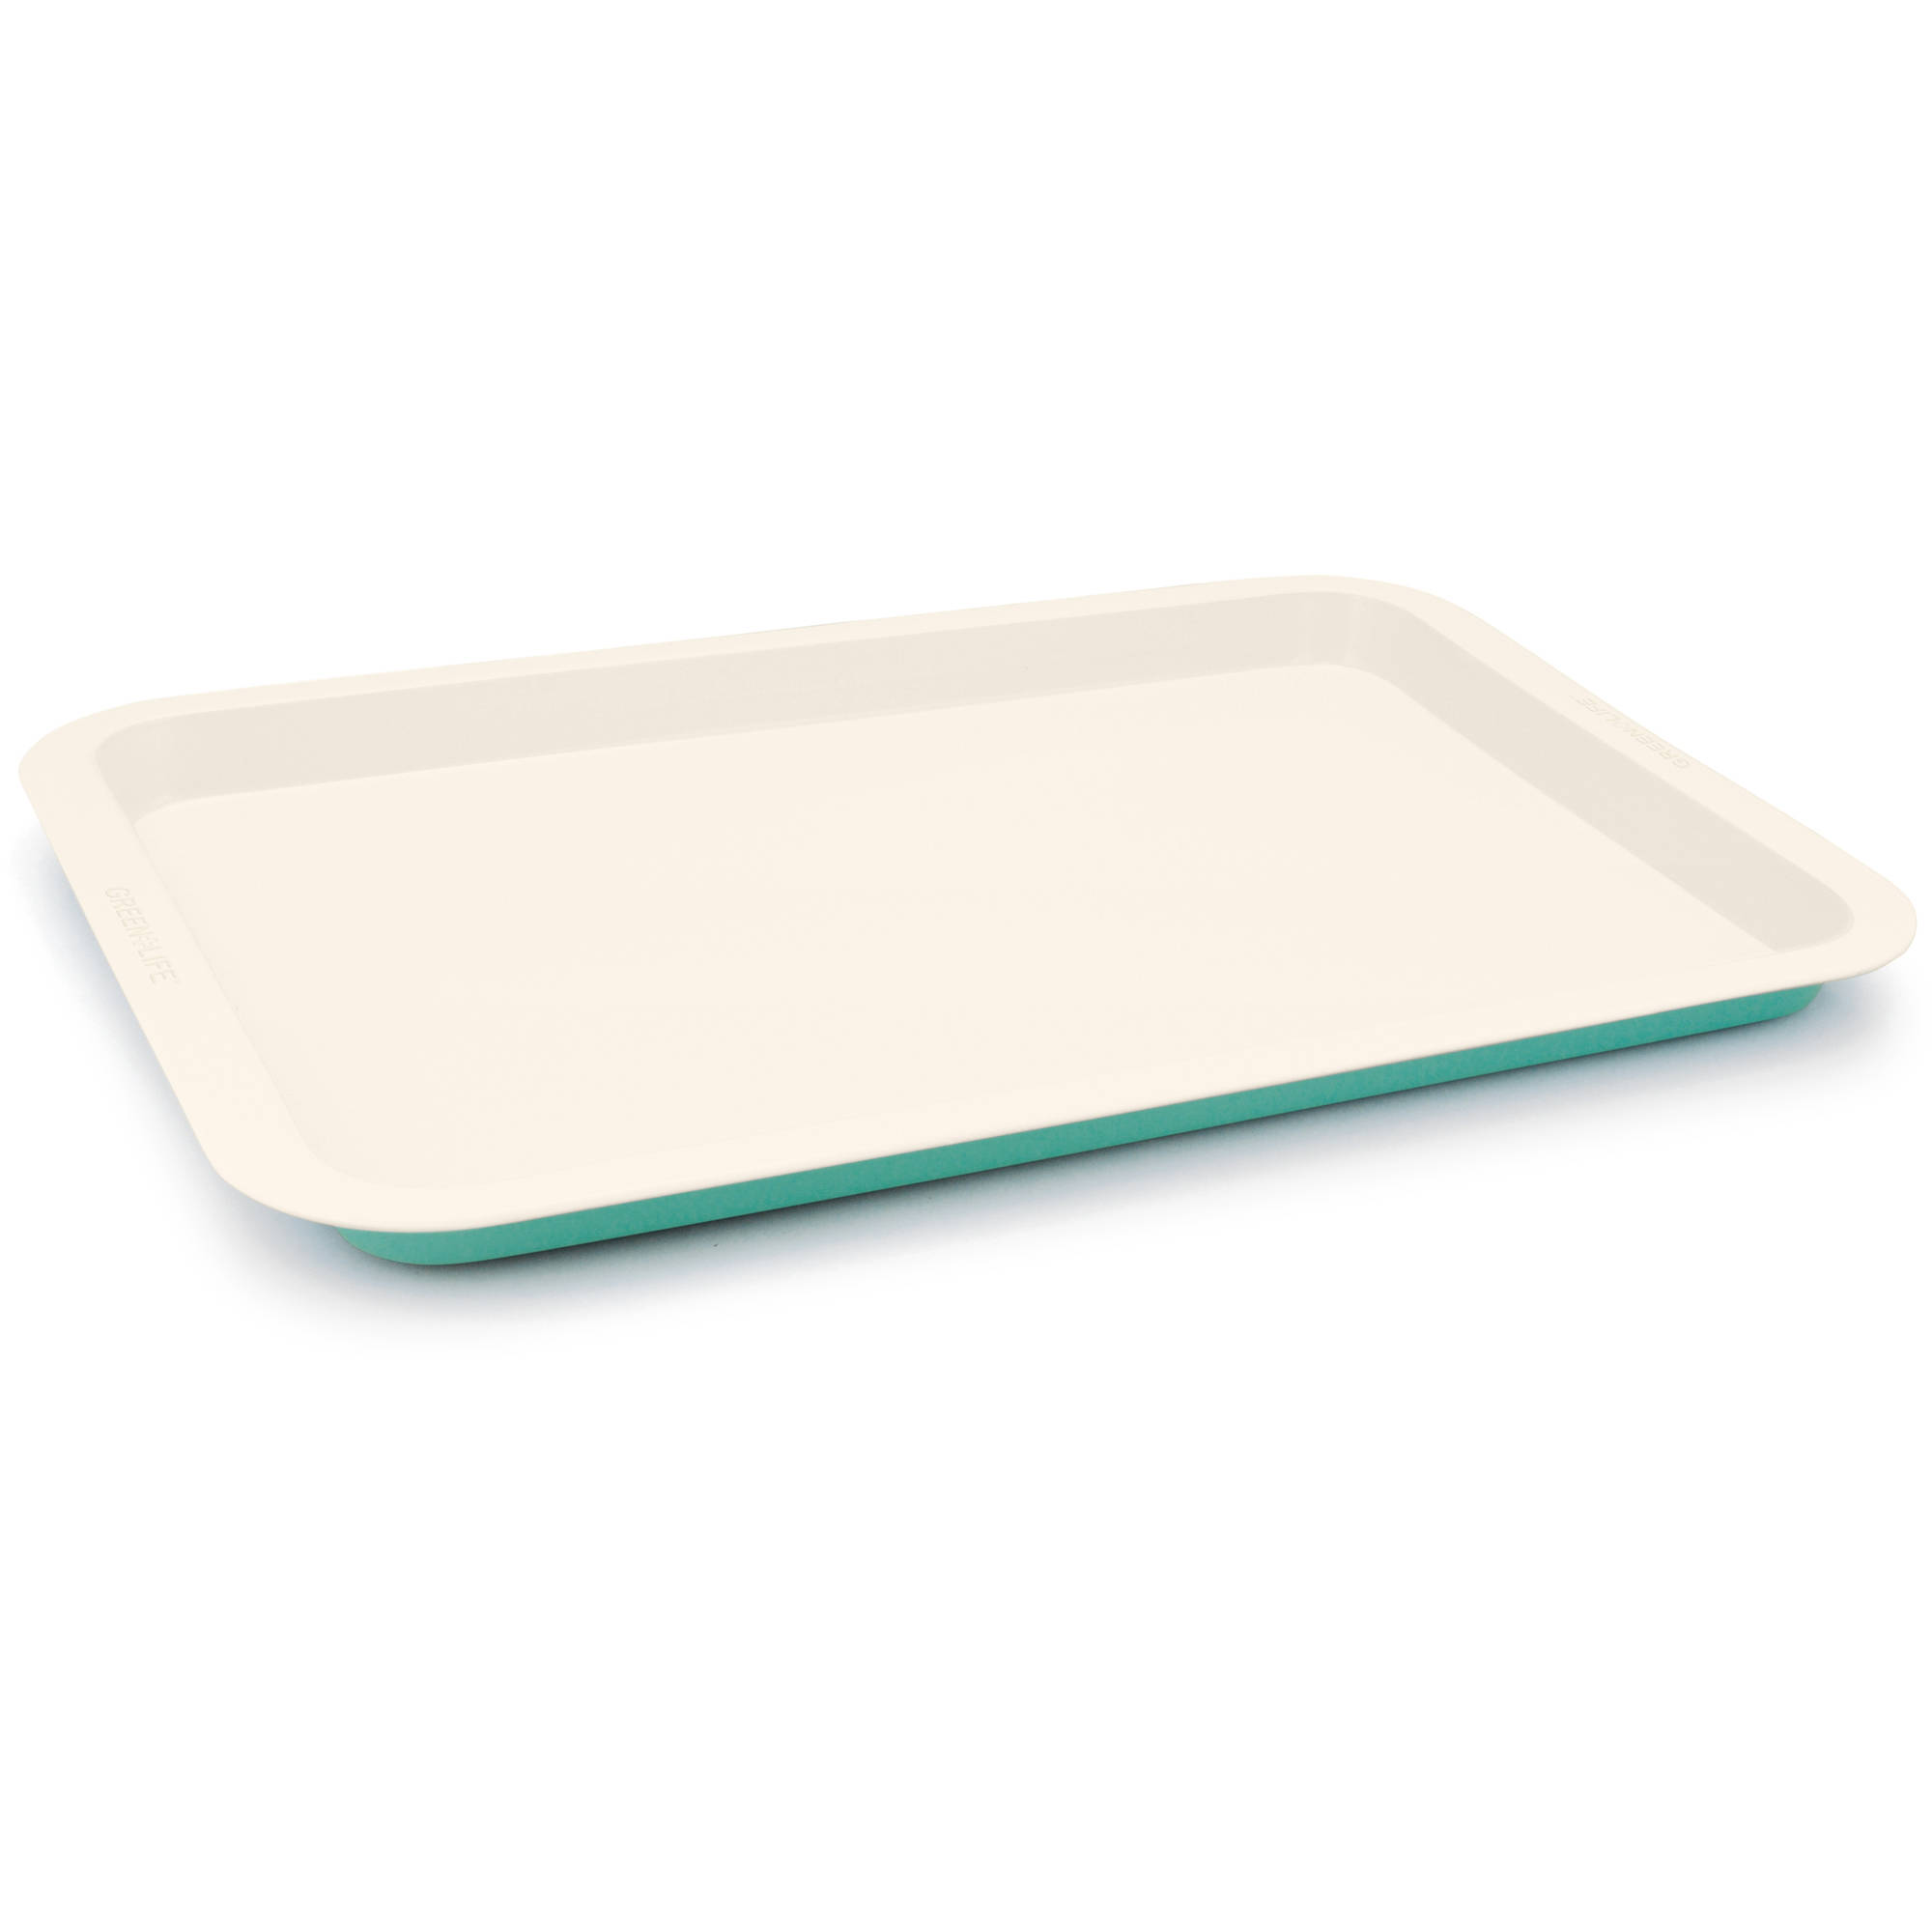 Green Life Absolutely Toxin Free Healthy Ceramic Non Stick Cookie Sheet, Turquoise by Green Life